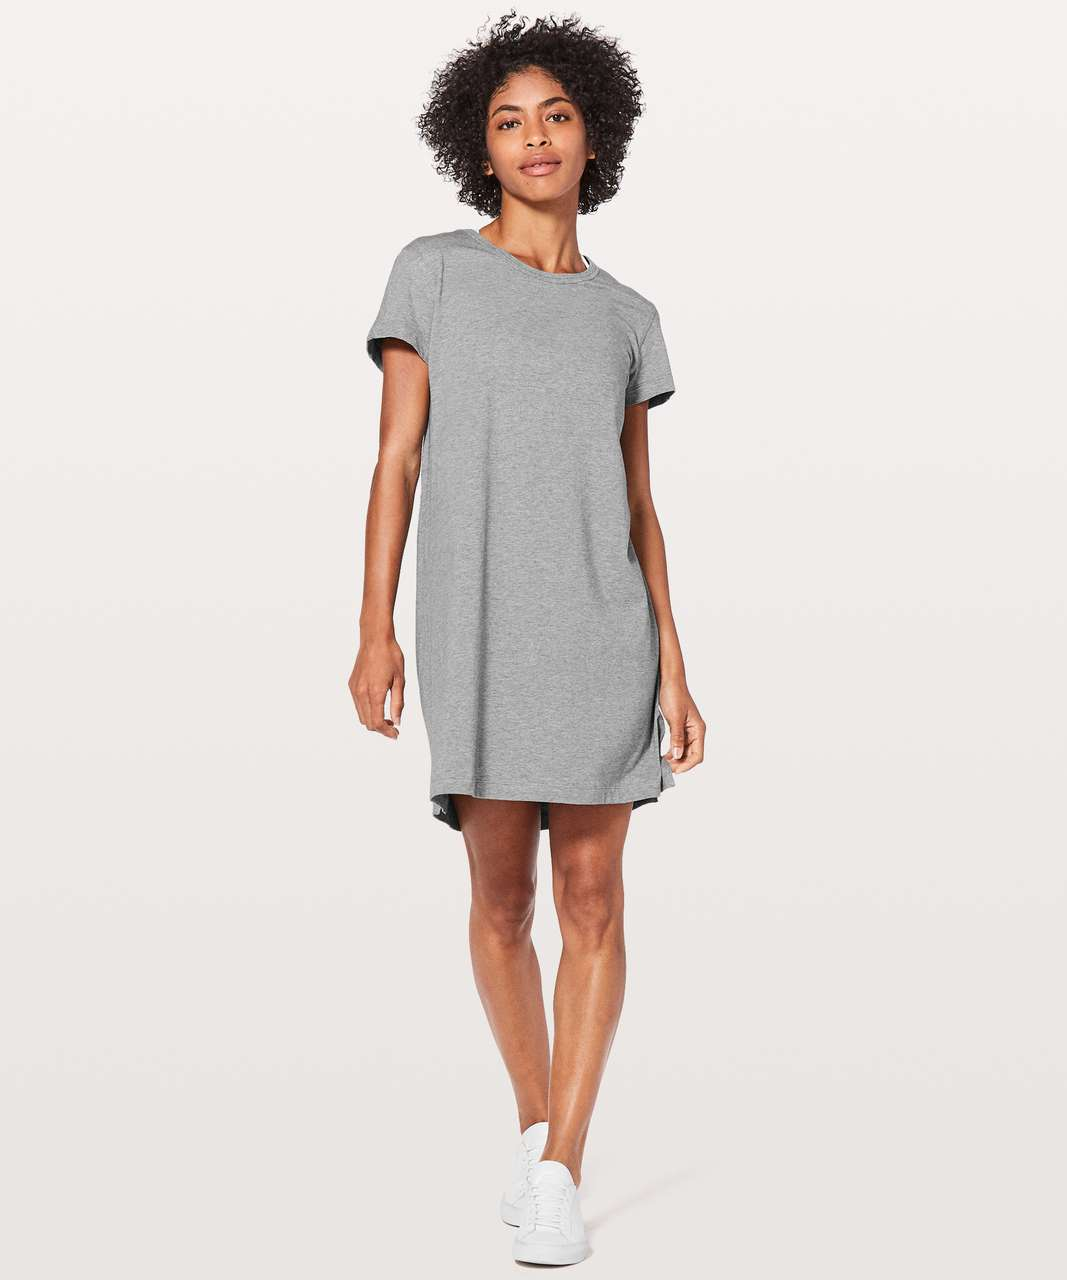 Lululemon Day Tripper Dress - Heathered Medium Grey